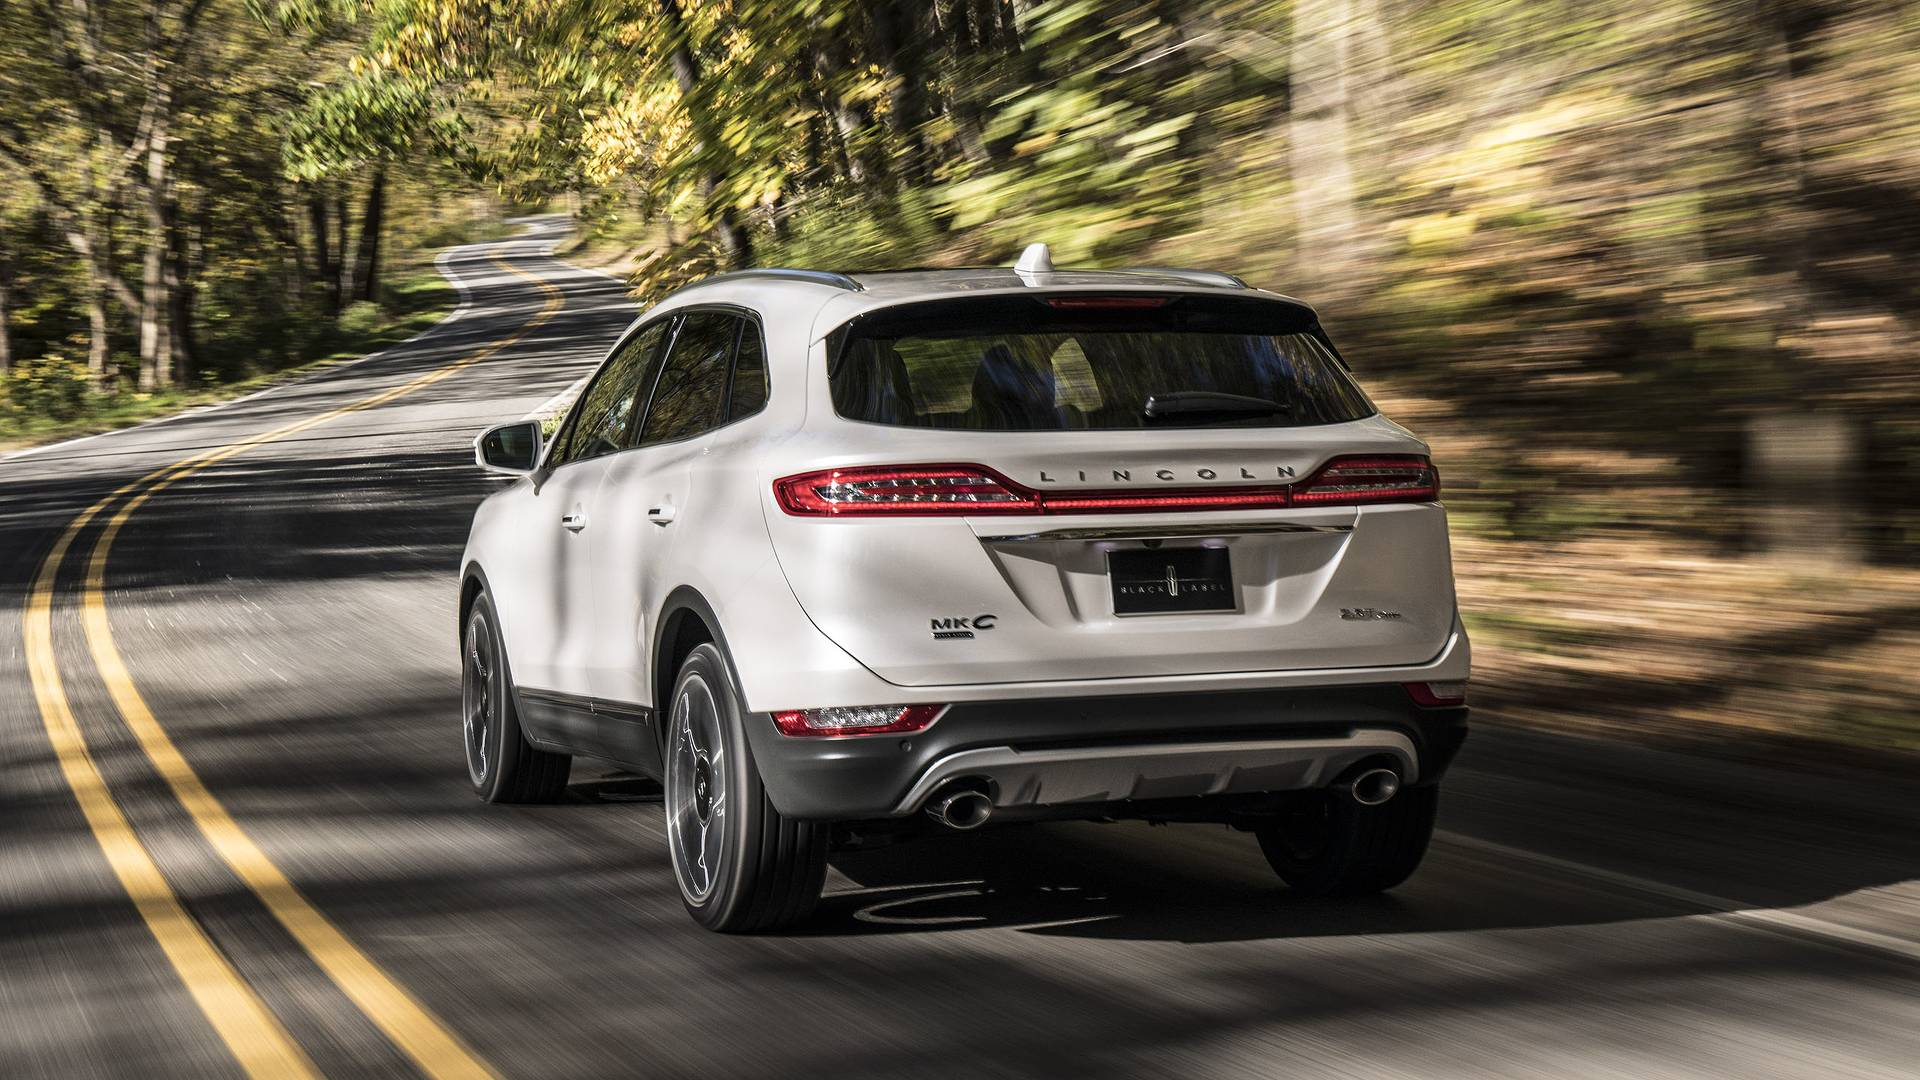 Lincoln Mkc Successor Could Be Named Corsair Autoevolution